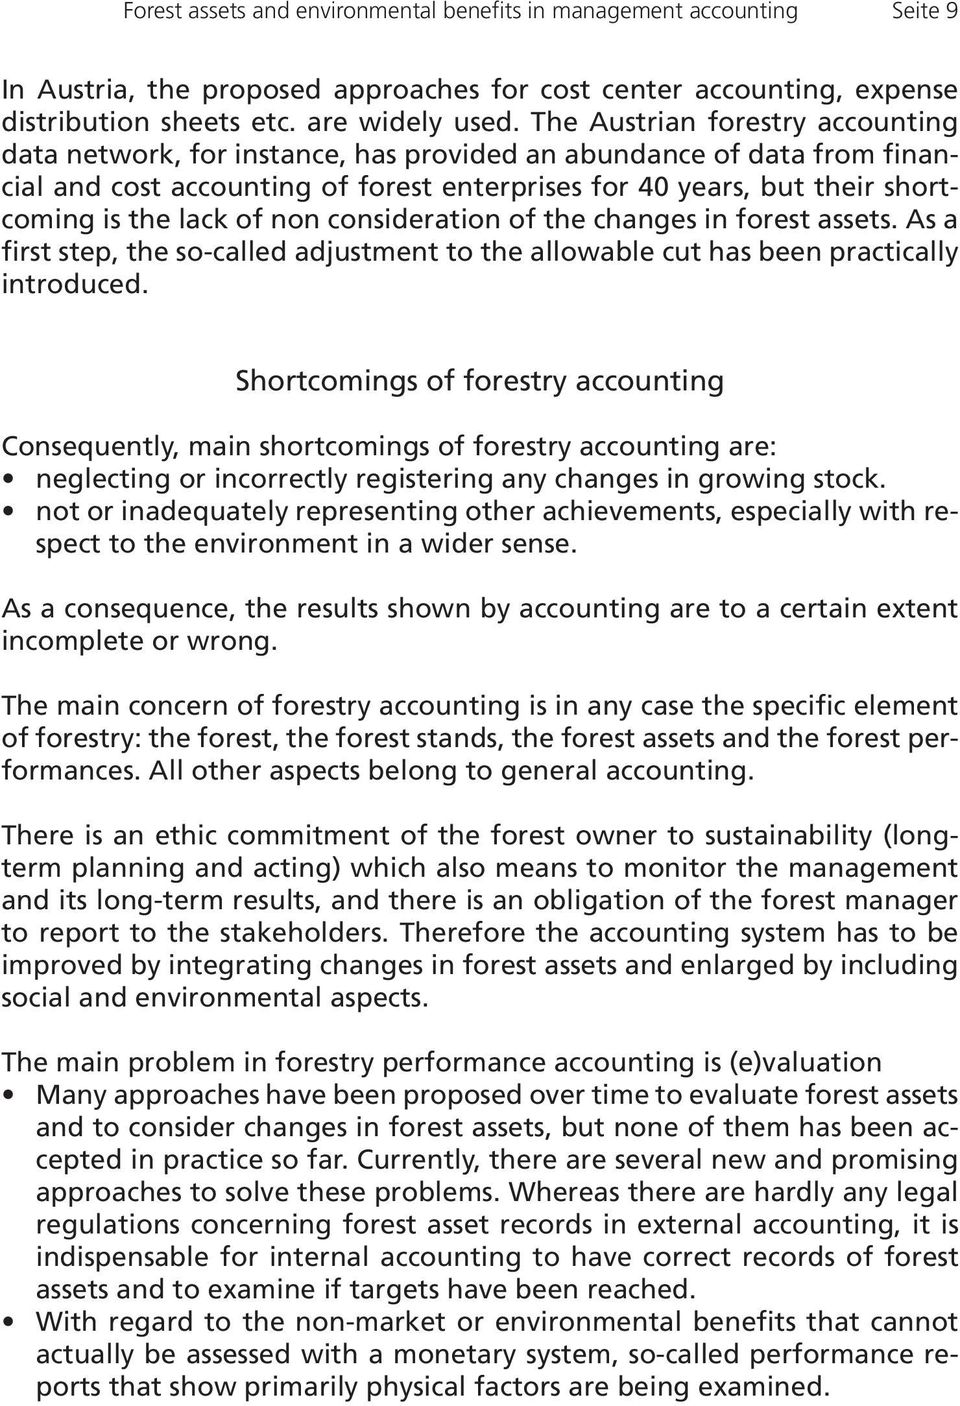 of non consideration of the changes in forest assets. As a first step, the so-called adjustment to the allowable cut has been practically introduced.